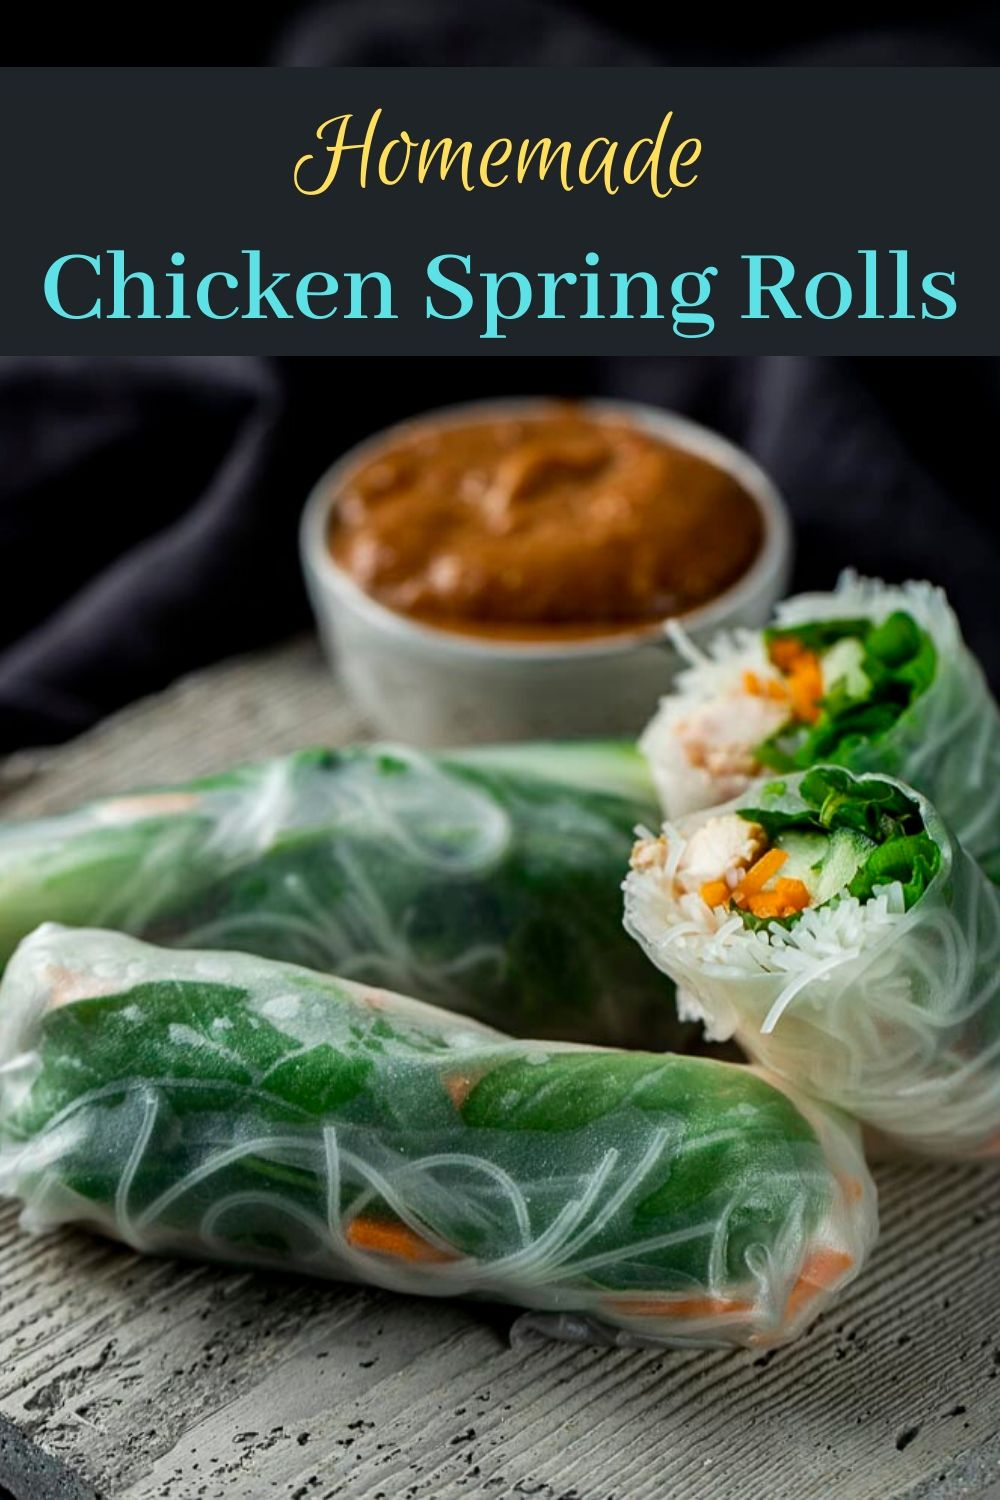 Chicken Summer Rolls with Peanut Sauce